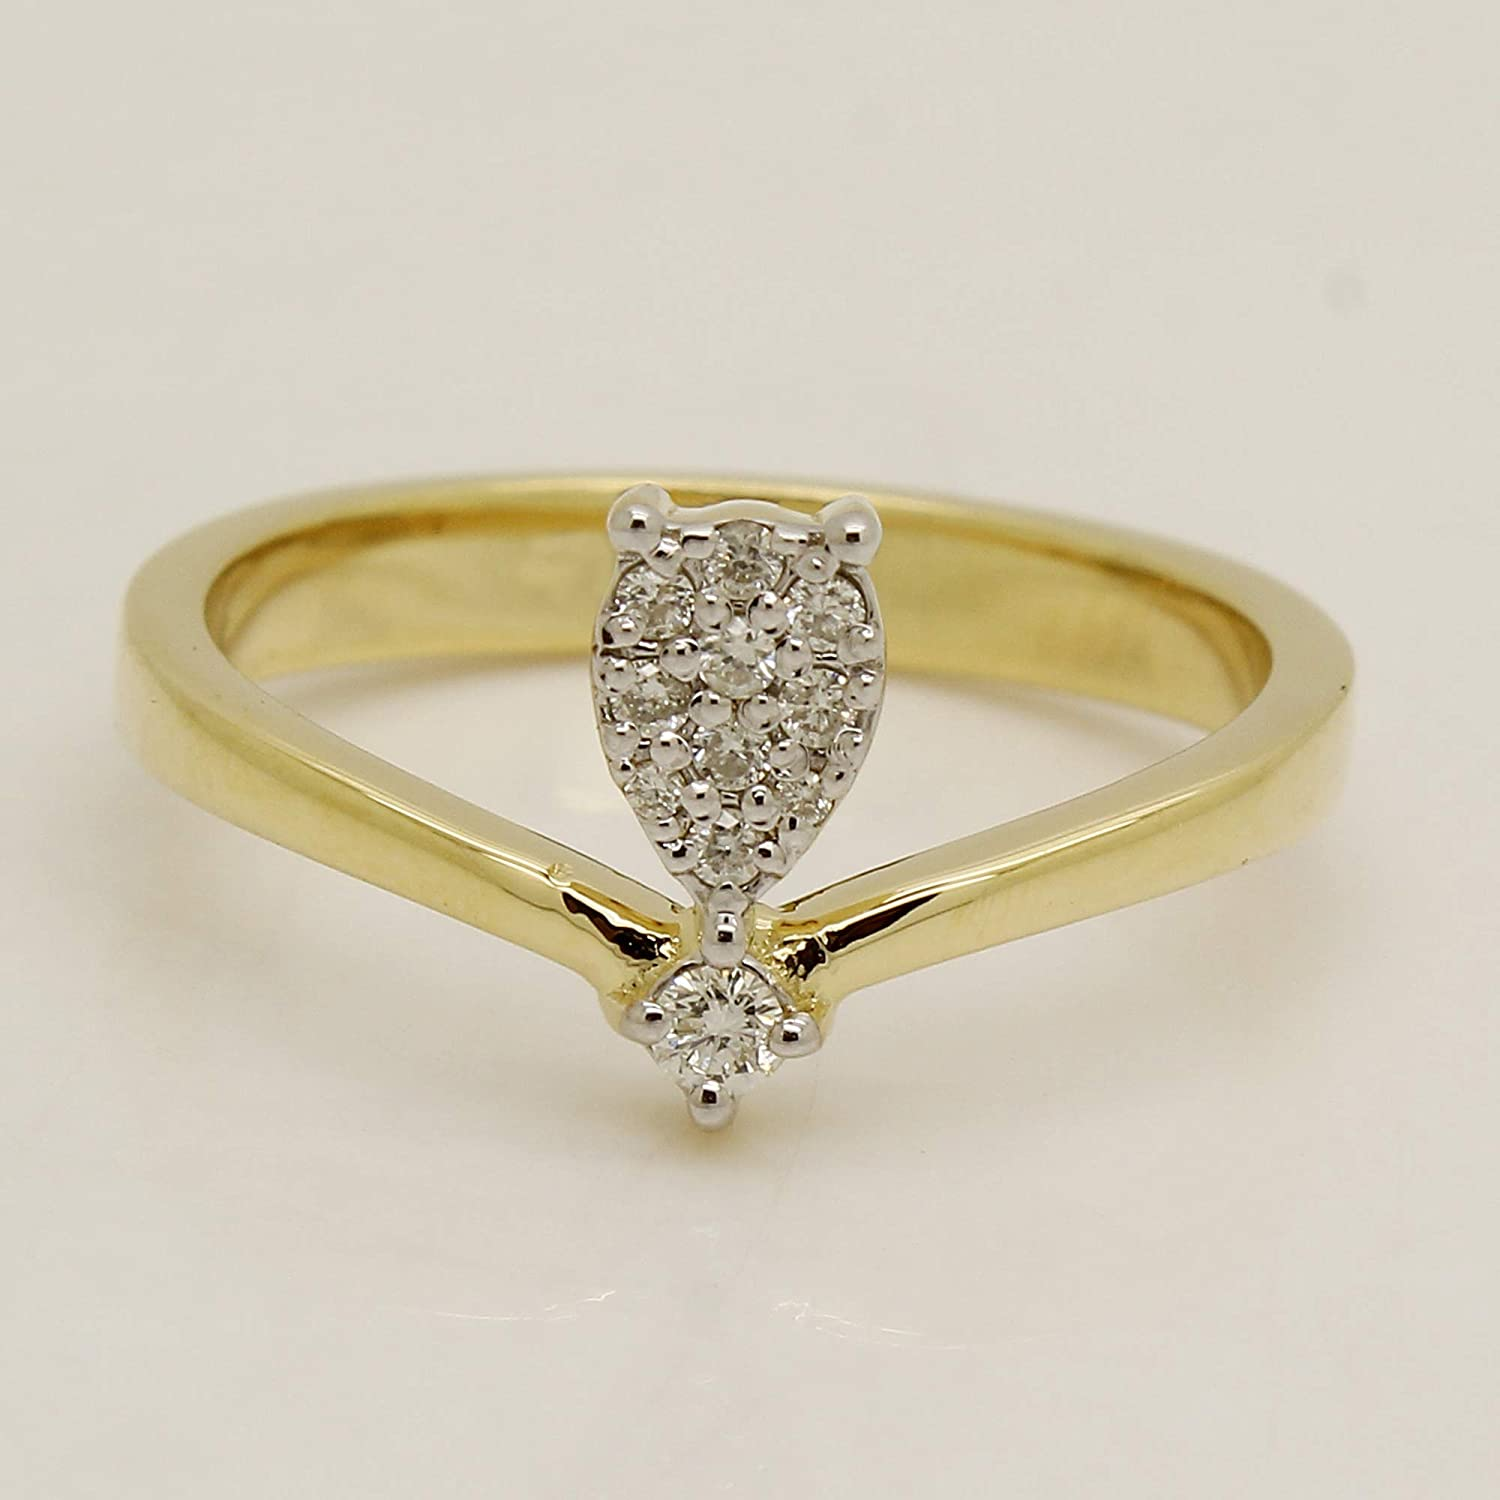 0.13 CT Round Natural Diamond 14K Yellow Gold Over Cluster Engagement Ring